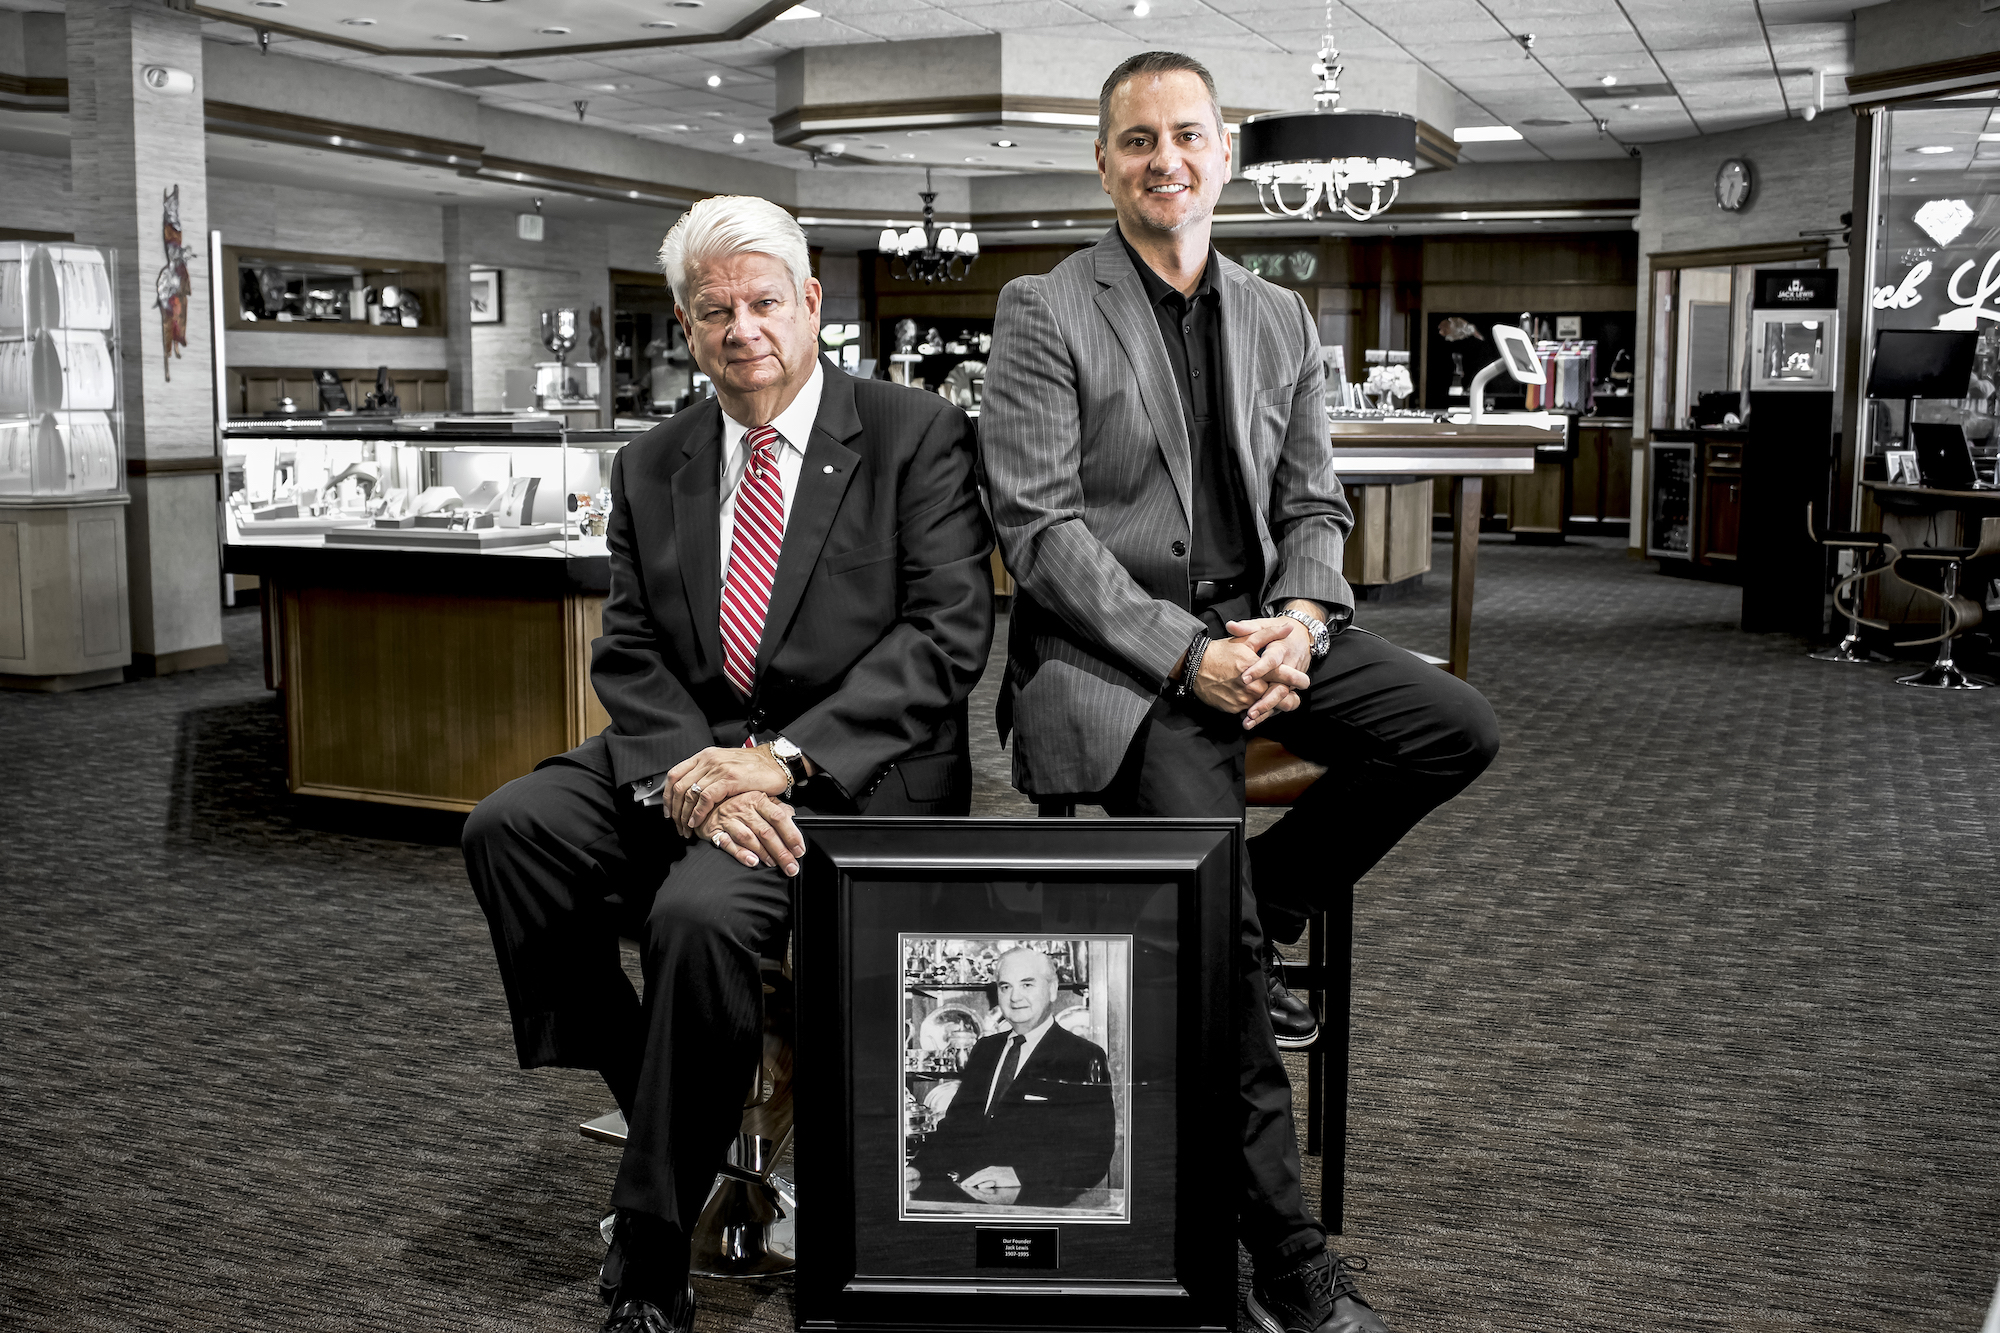 a black and white framed portrait of original owner Jack Lewis is situated behind the 2nd CEO John Wohlwend and the the current CEO John Carter